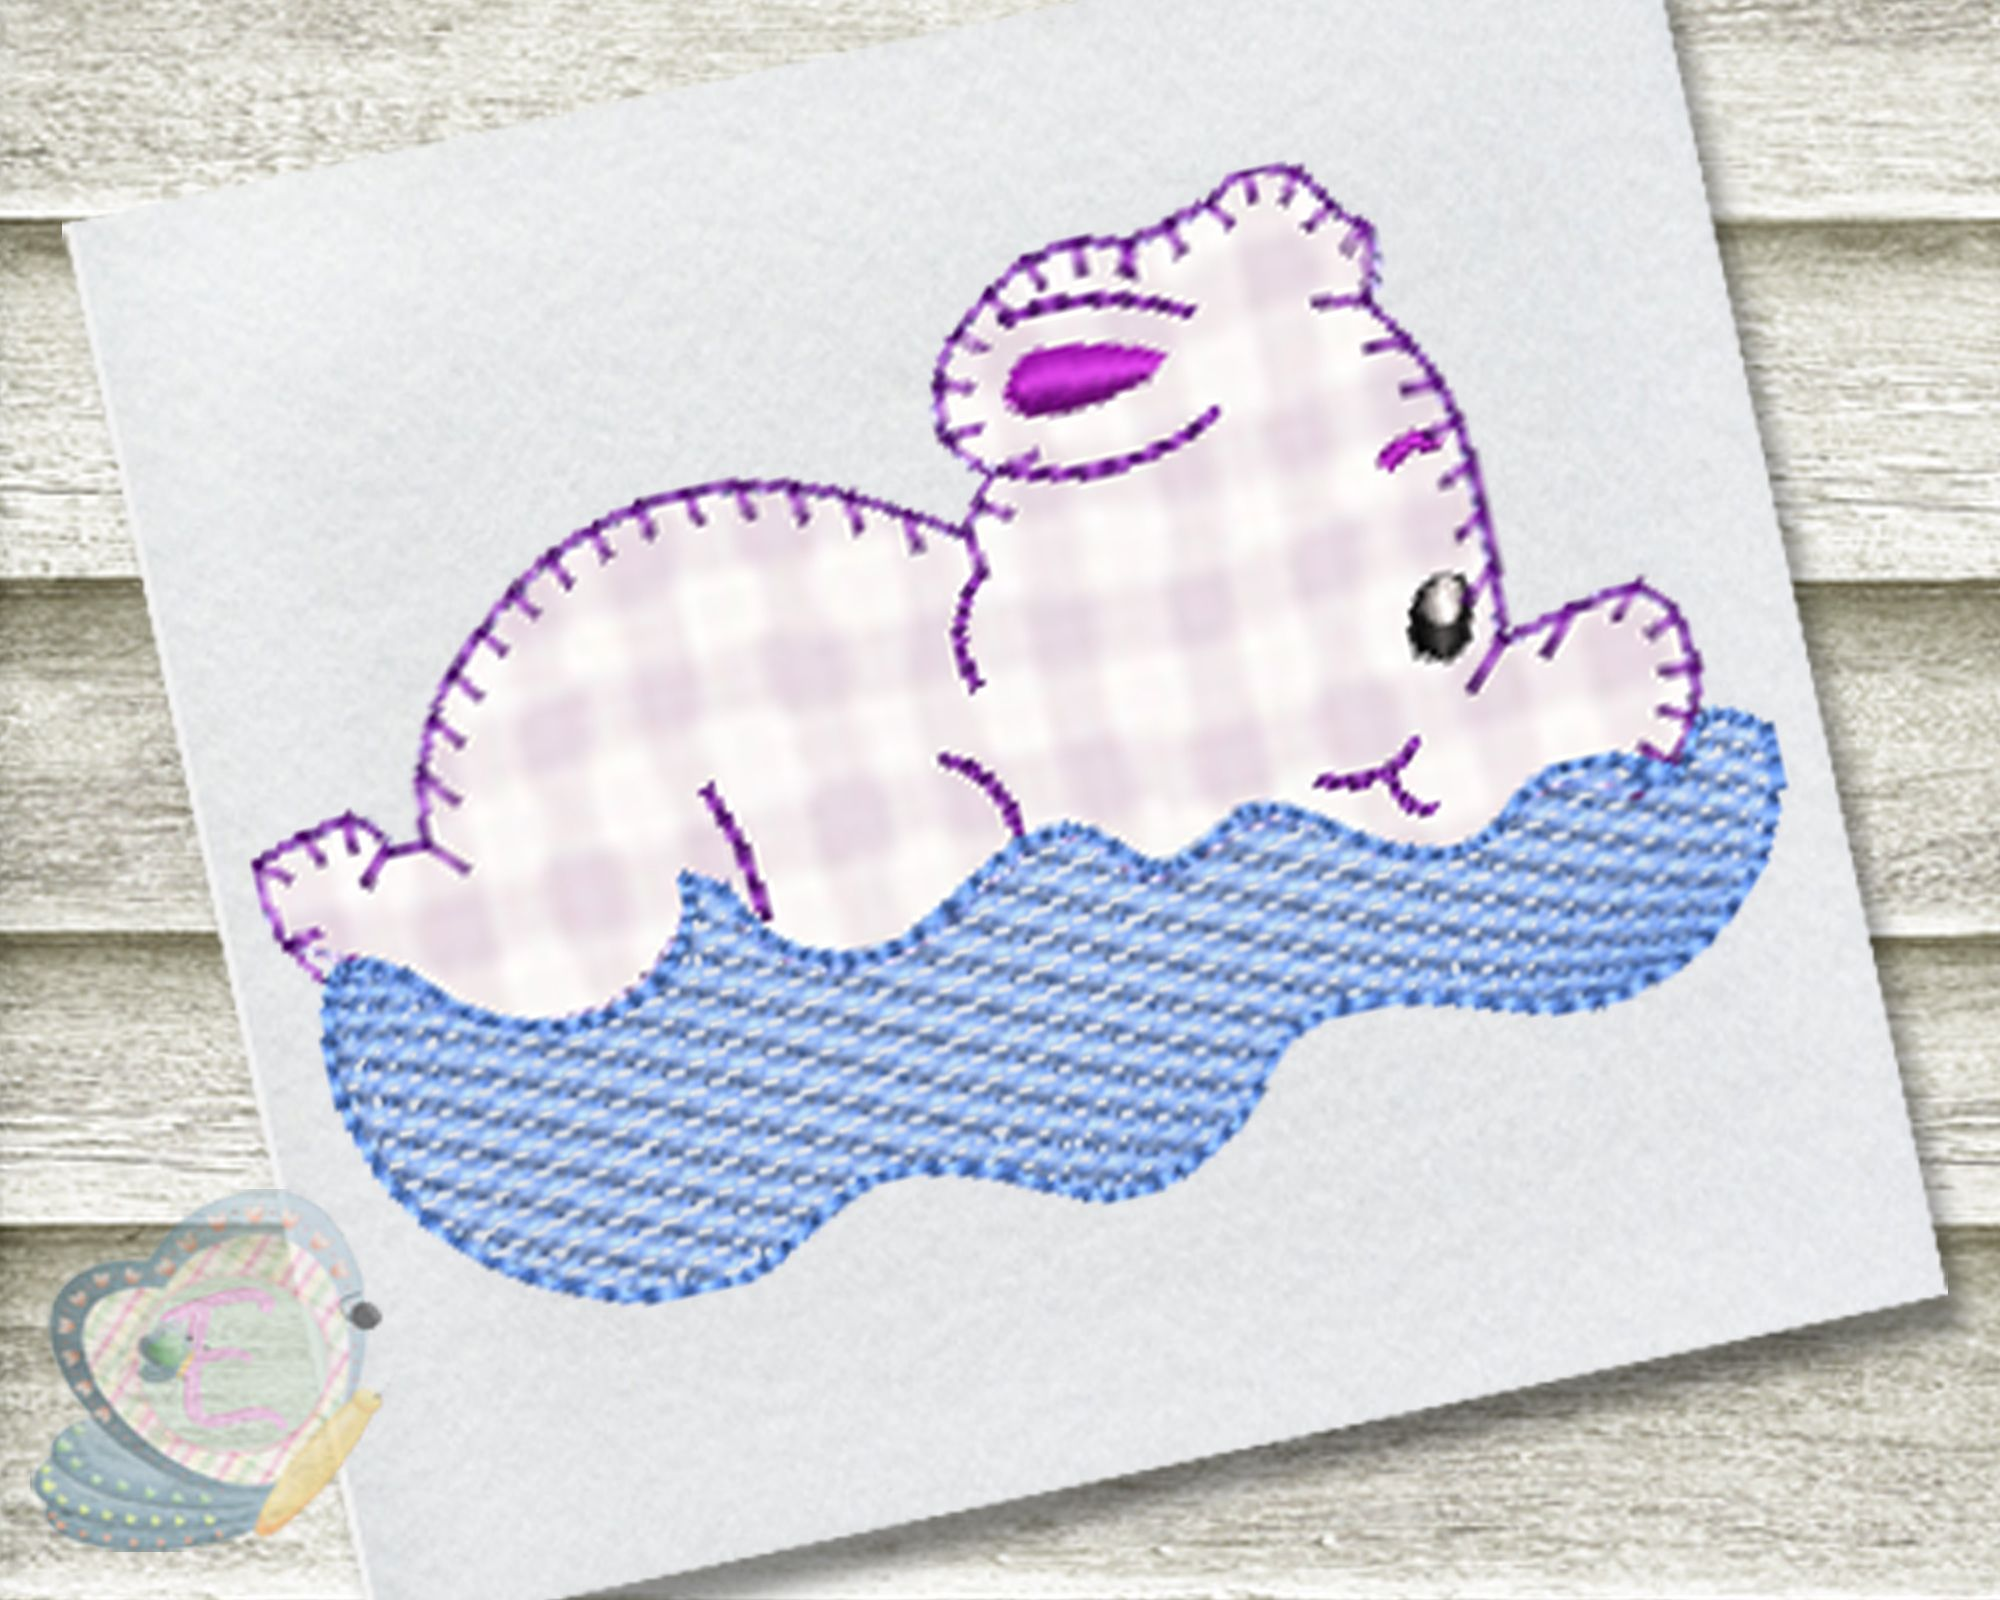 Baby Hippo Blanket Stitch Applique Machine Embroidery Design #babyhippo